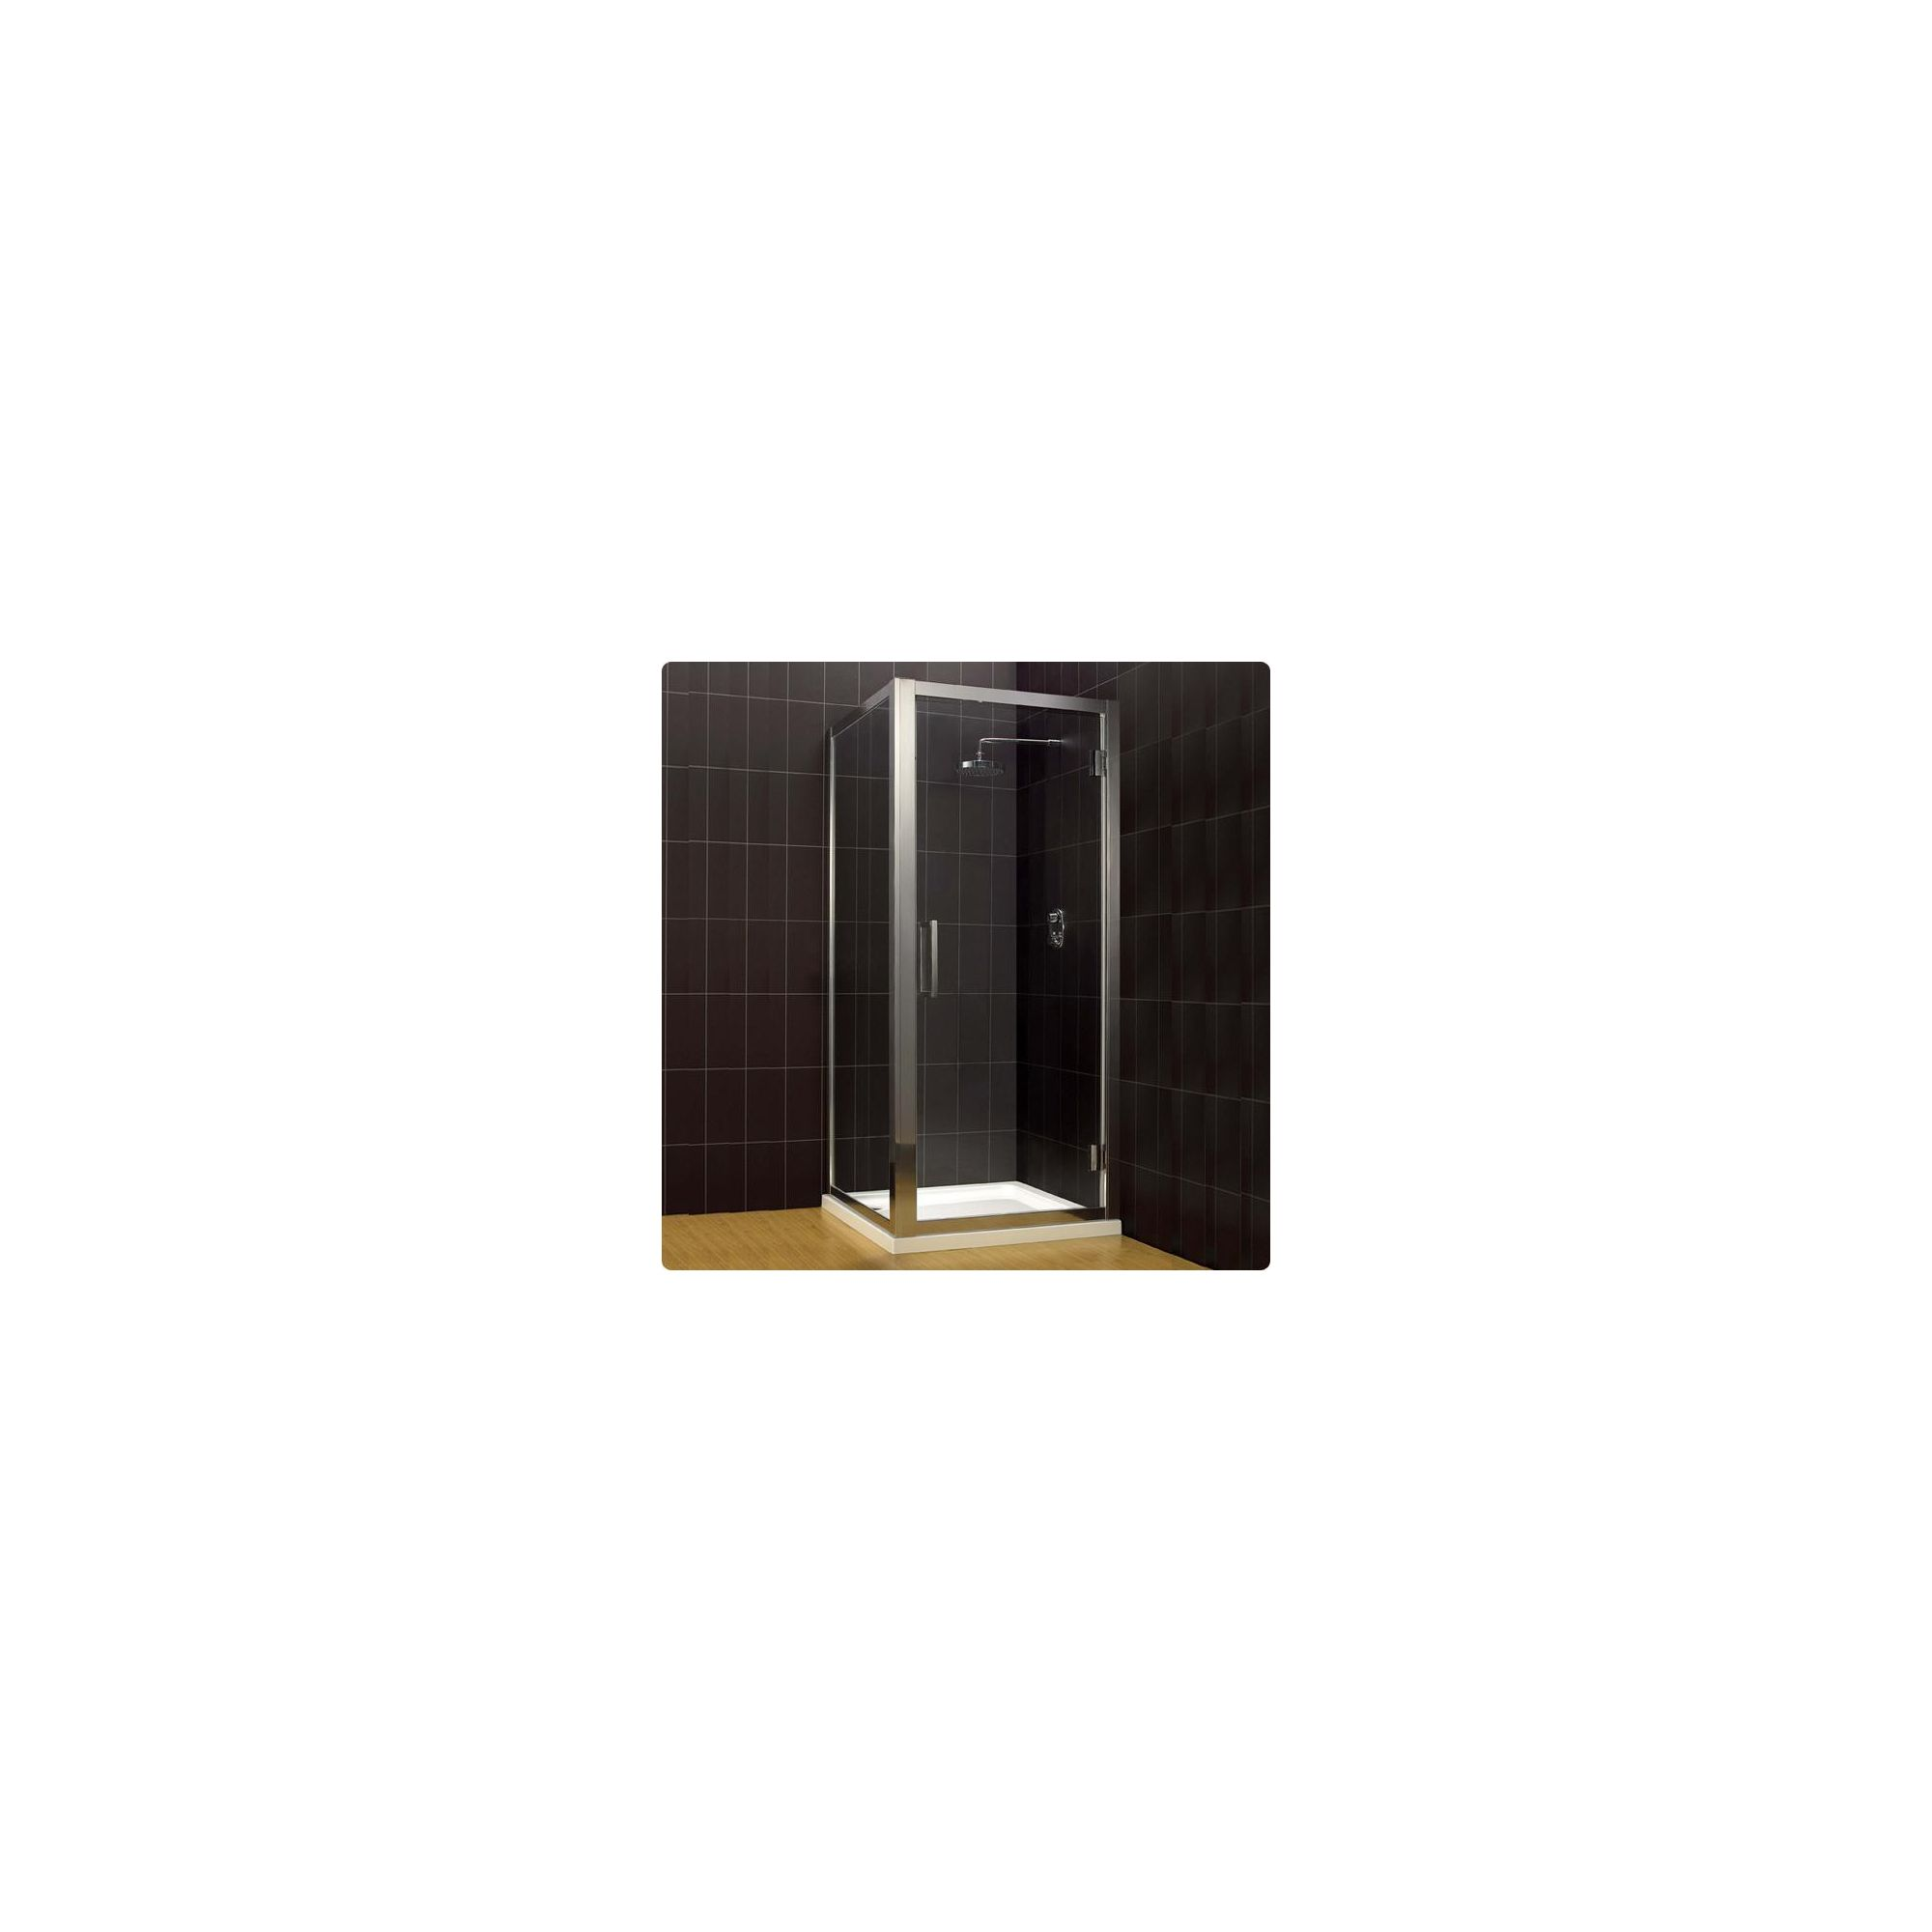 Duchy Supreme Silver Hinged Door Shower Enclosure, 800mm x 700mm, Standard Tray, 8mm Glass at Tesco Direct